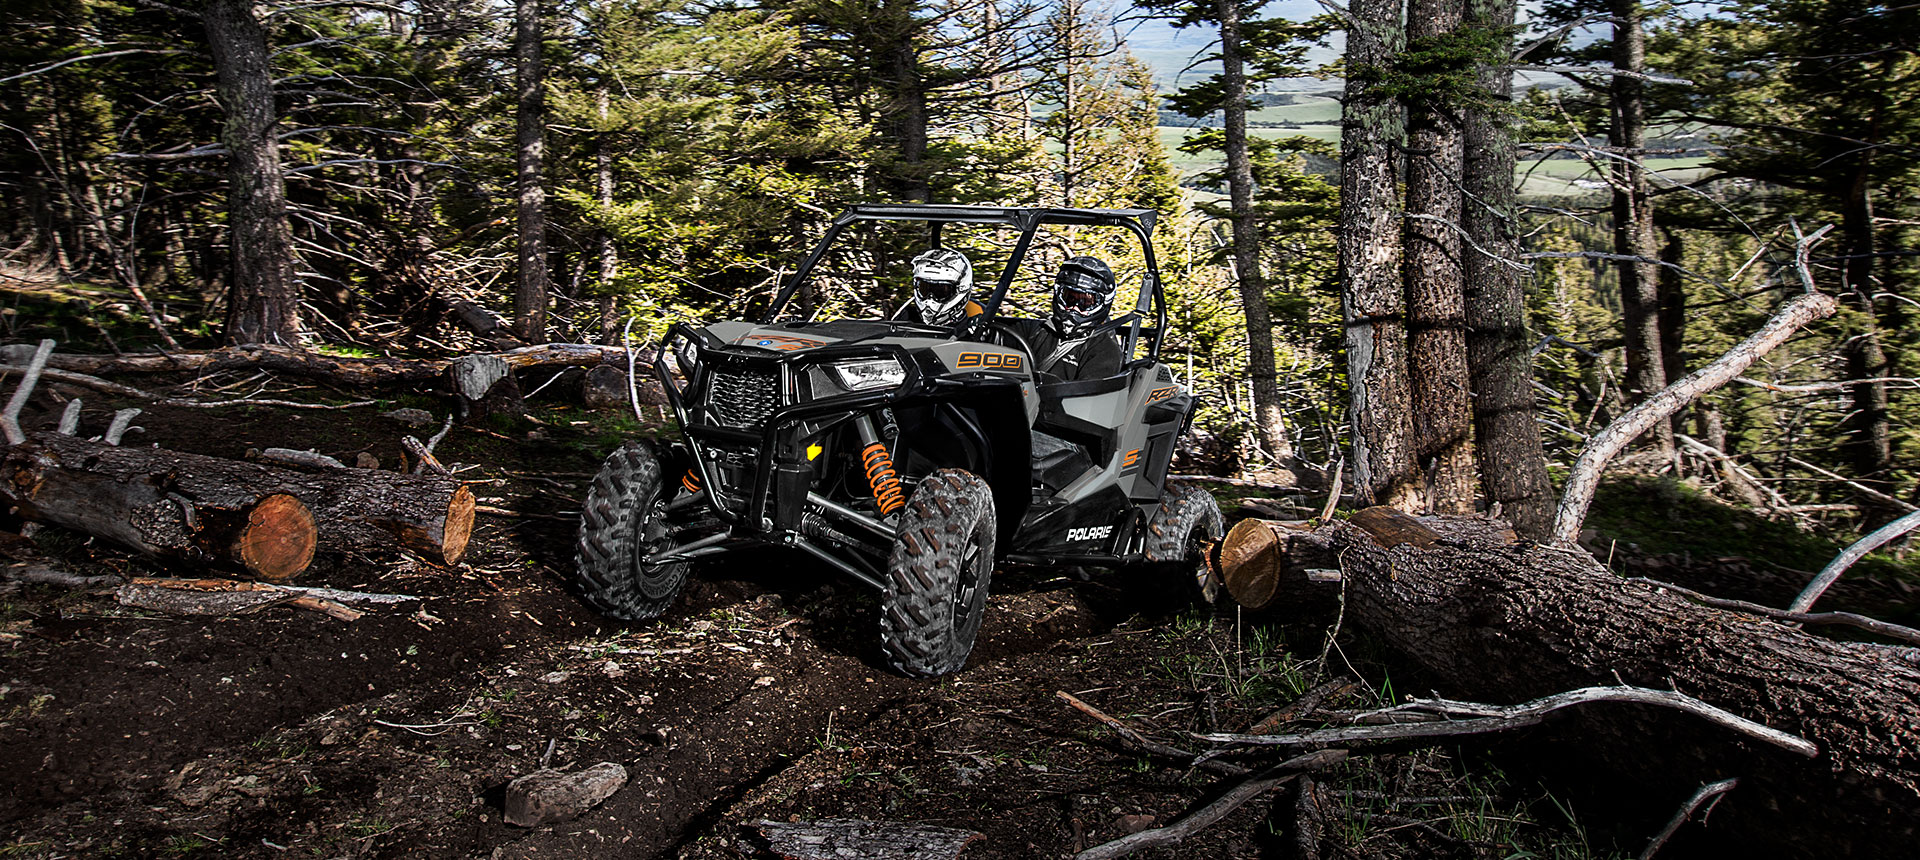 2019 Polaris RZR S 900 EPS in Albuquerque, New Mexico - Photo 2